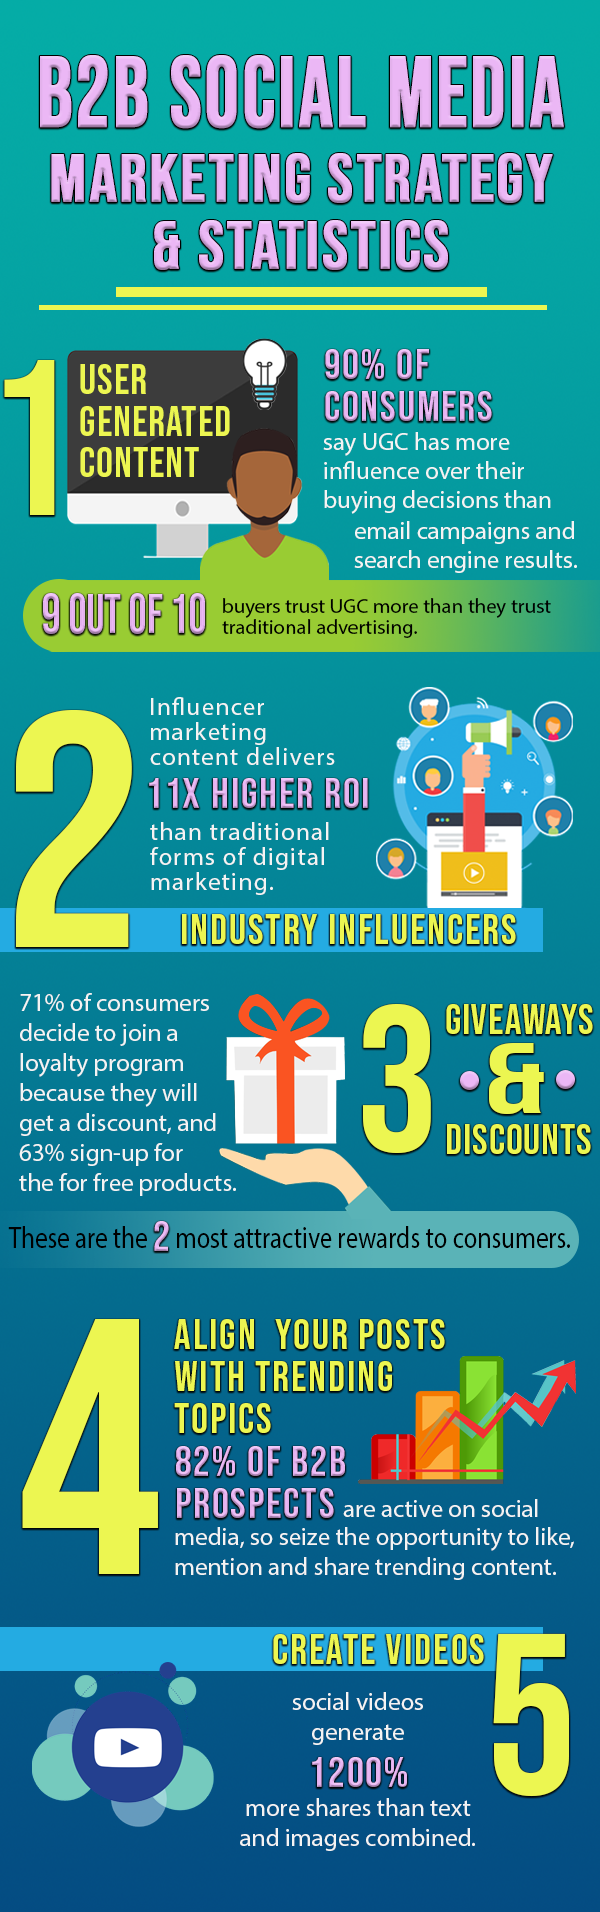 Infographic lists rising B2B digital marketing trends